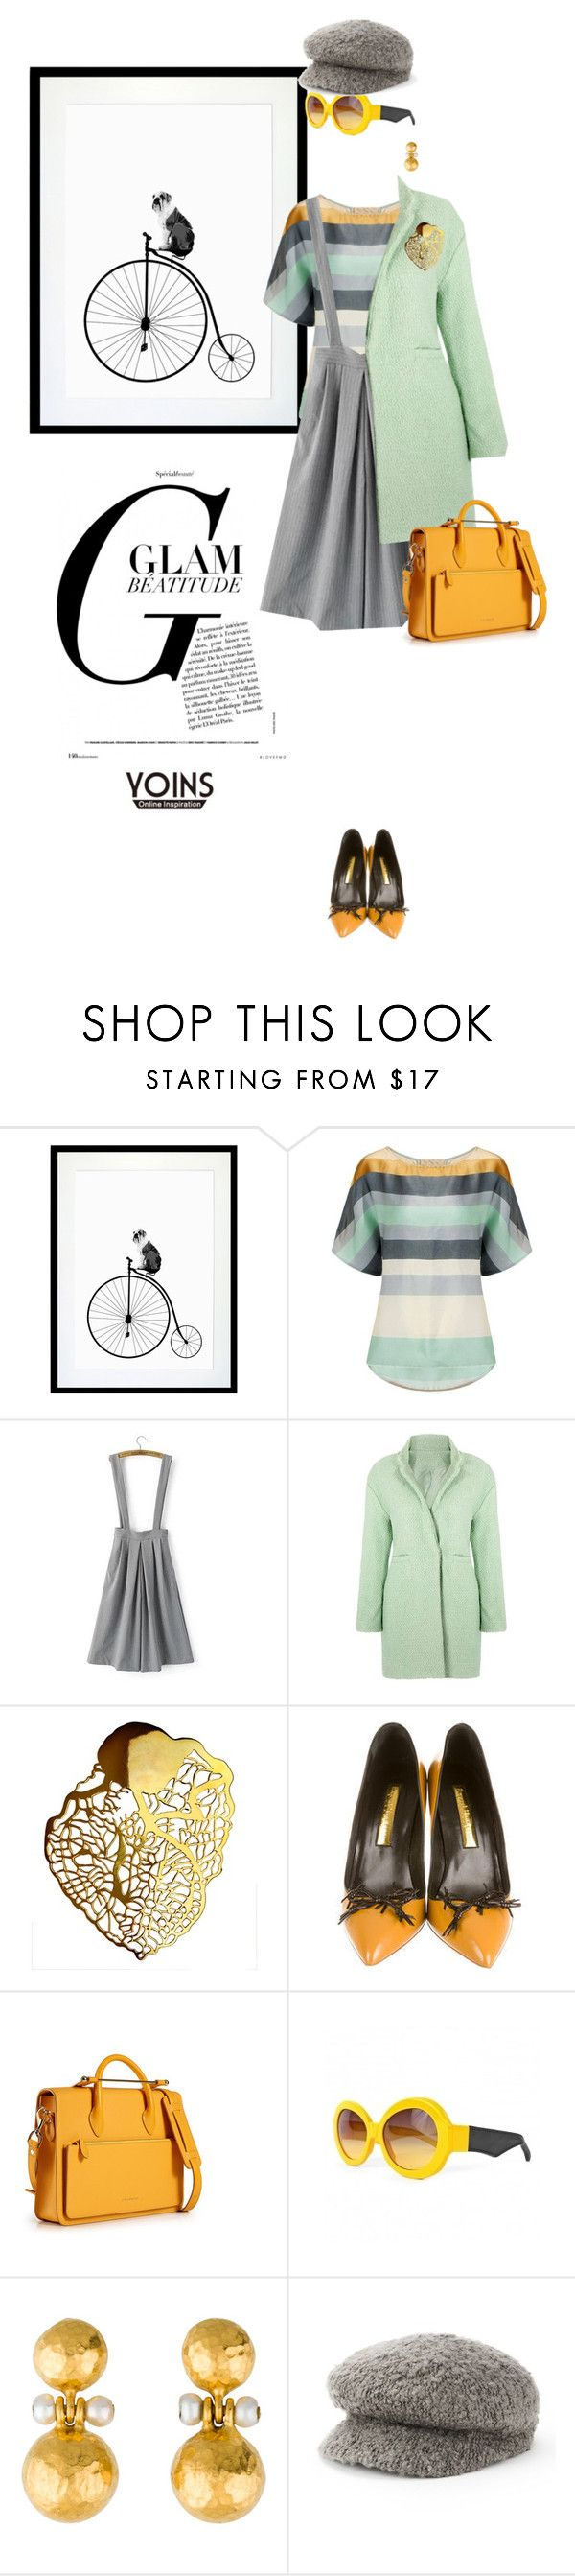 """""""pastel pretty with yoins"""" by pensivepeacock ❤ liked on Polyvore featuring Eleanor Stuart, Eina Ahluwalia, Rupert Sanderson, Sonoma life + style and MustHave"""